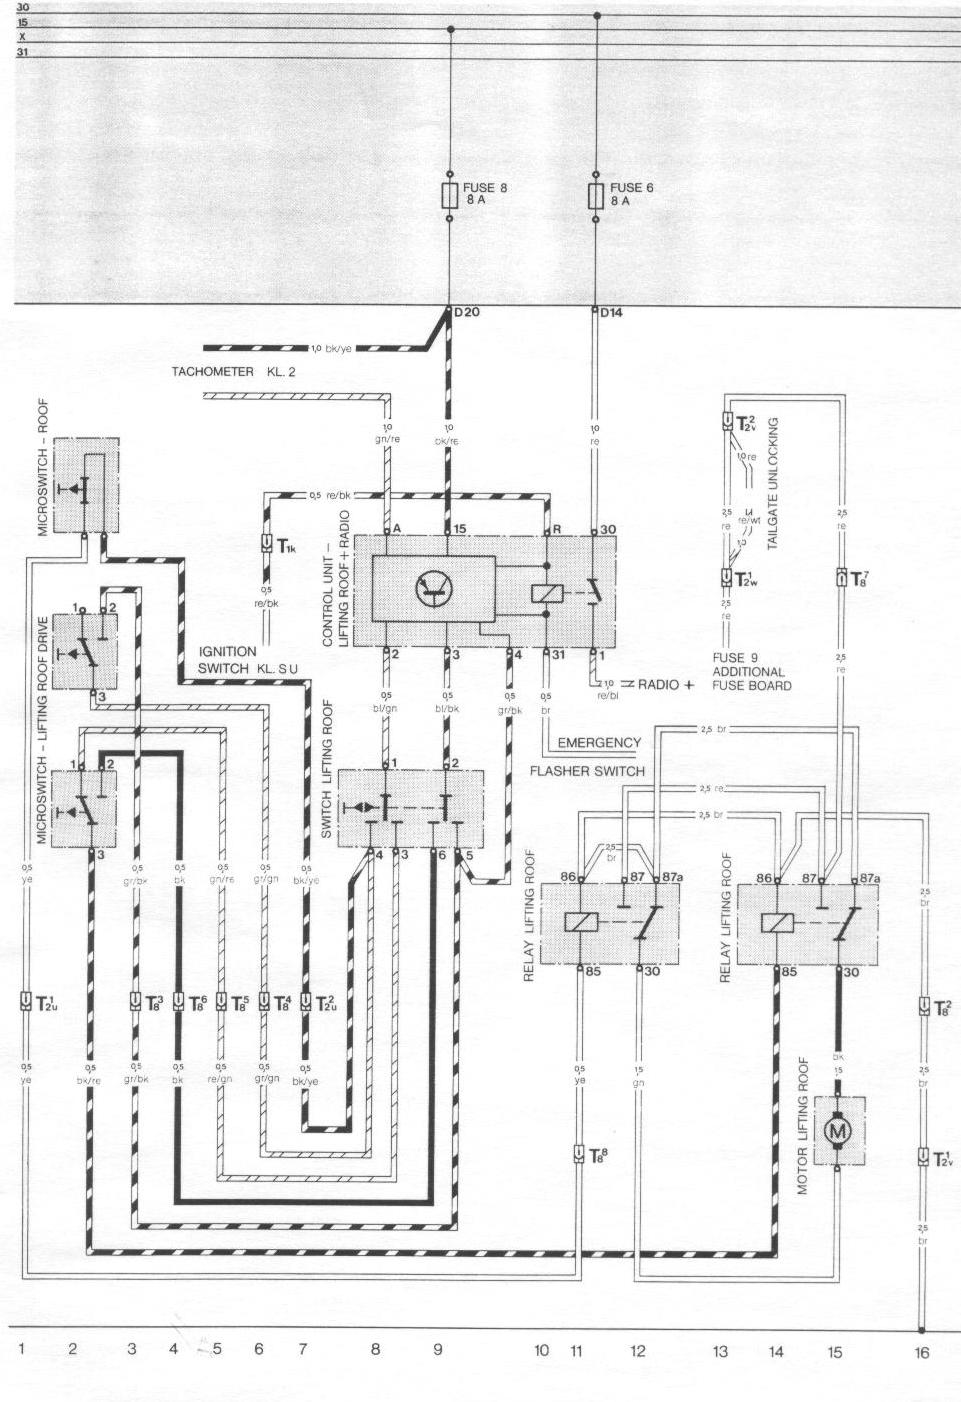 944_84_sunroof pelican parts porsche 924 944 electrical diagrams 1984 porsche 944 fuse box diagram at reclaimingppi.co